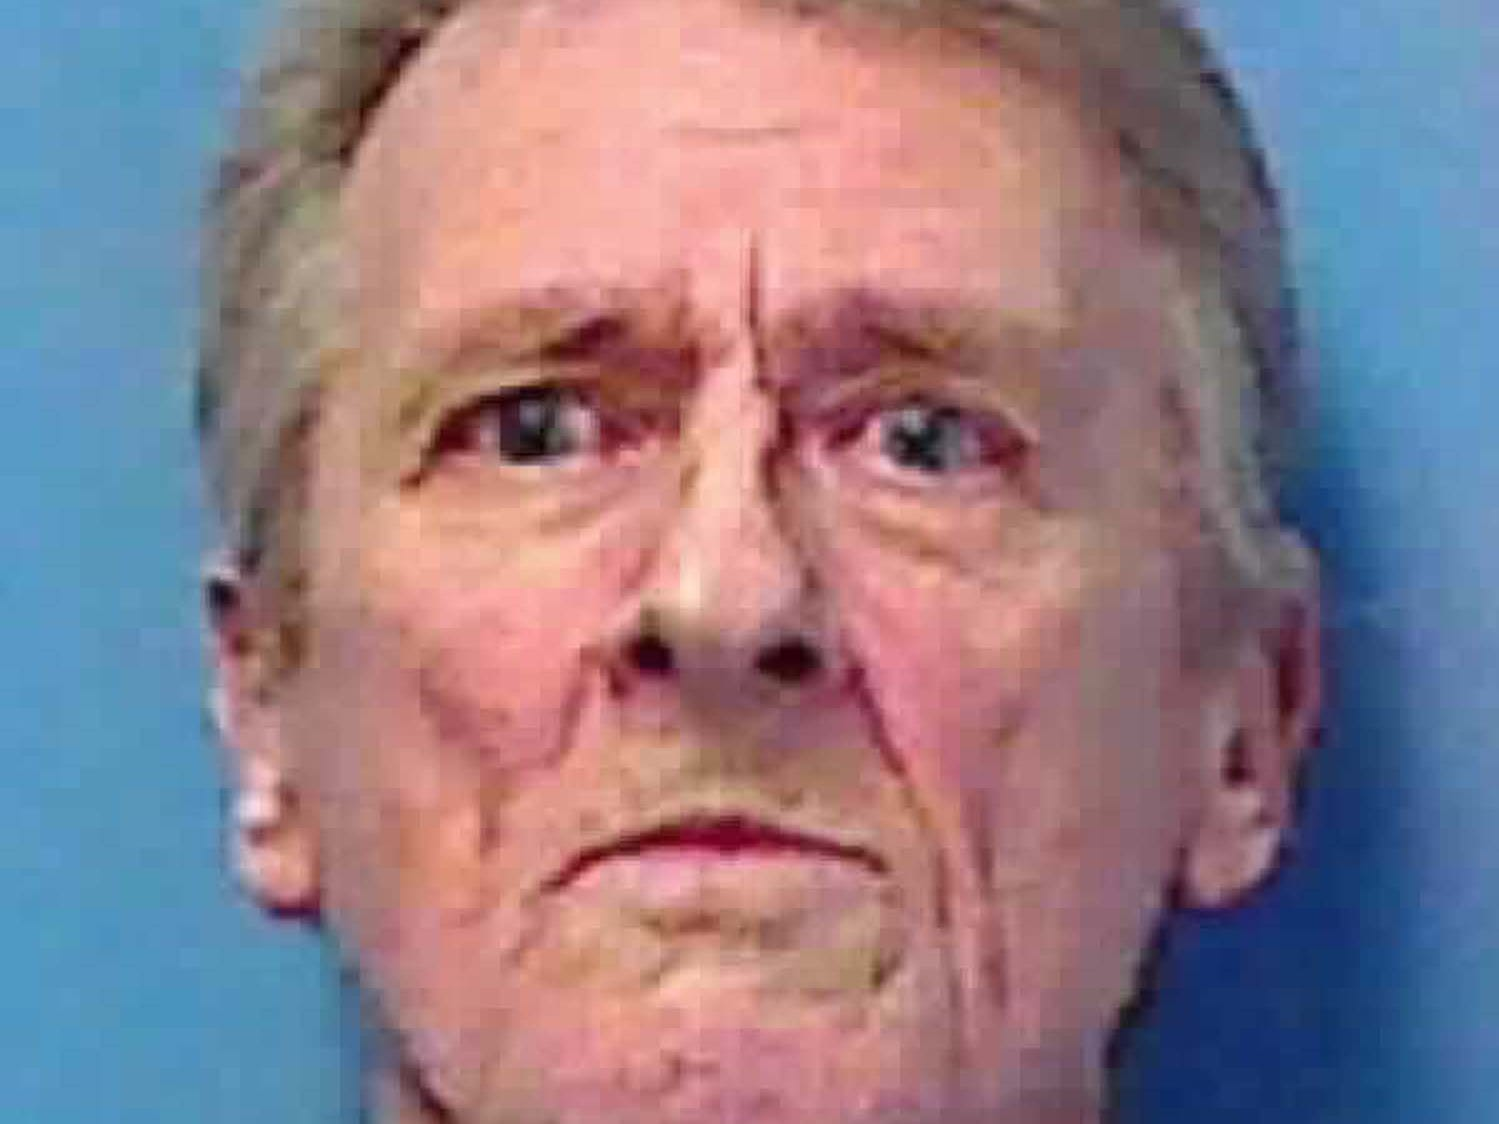 "Richard Gottschall, 64, is wanted by the Nevada Department of Corrections for escaping from the Casa Grande Transitional Housing center in Las Vegas. He was serving time for selling a controlled substance in Clark County. He is 5 feet 10 inches tall, weighs 175 pounds and has brown hair and blue eyes. He also has several tattoos including the phrase ""easy come, easy go"" on his right arm, along with a tattoo of a $50 bill."